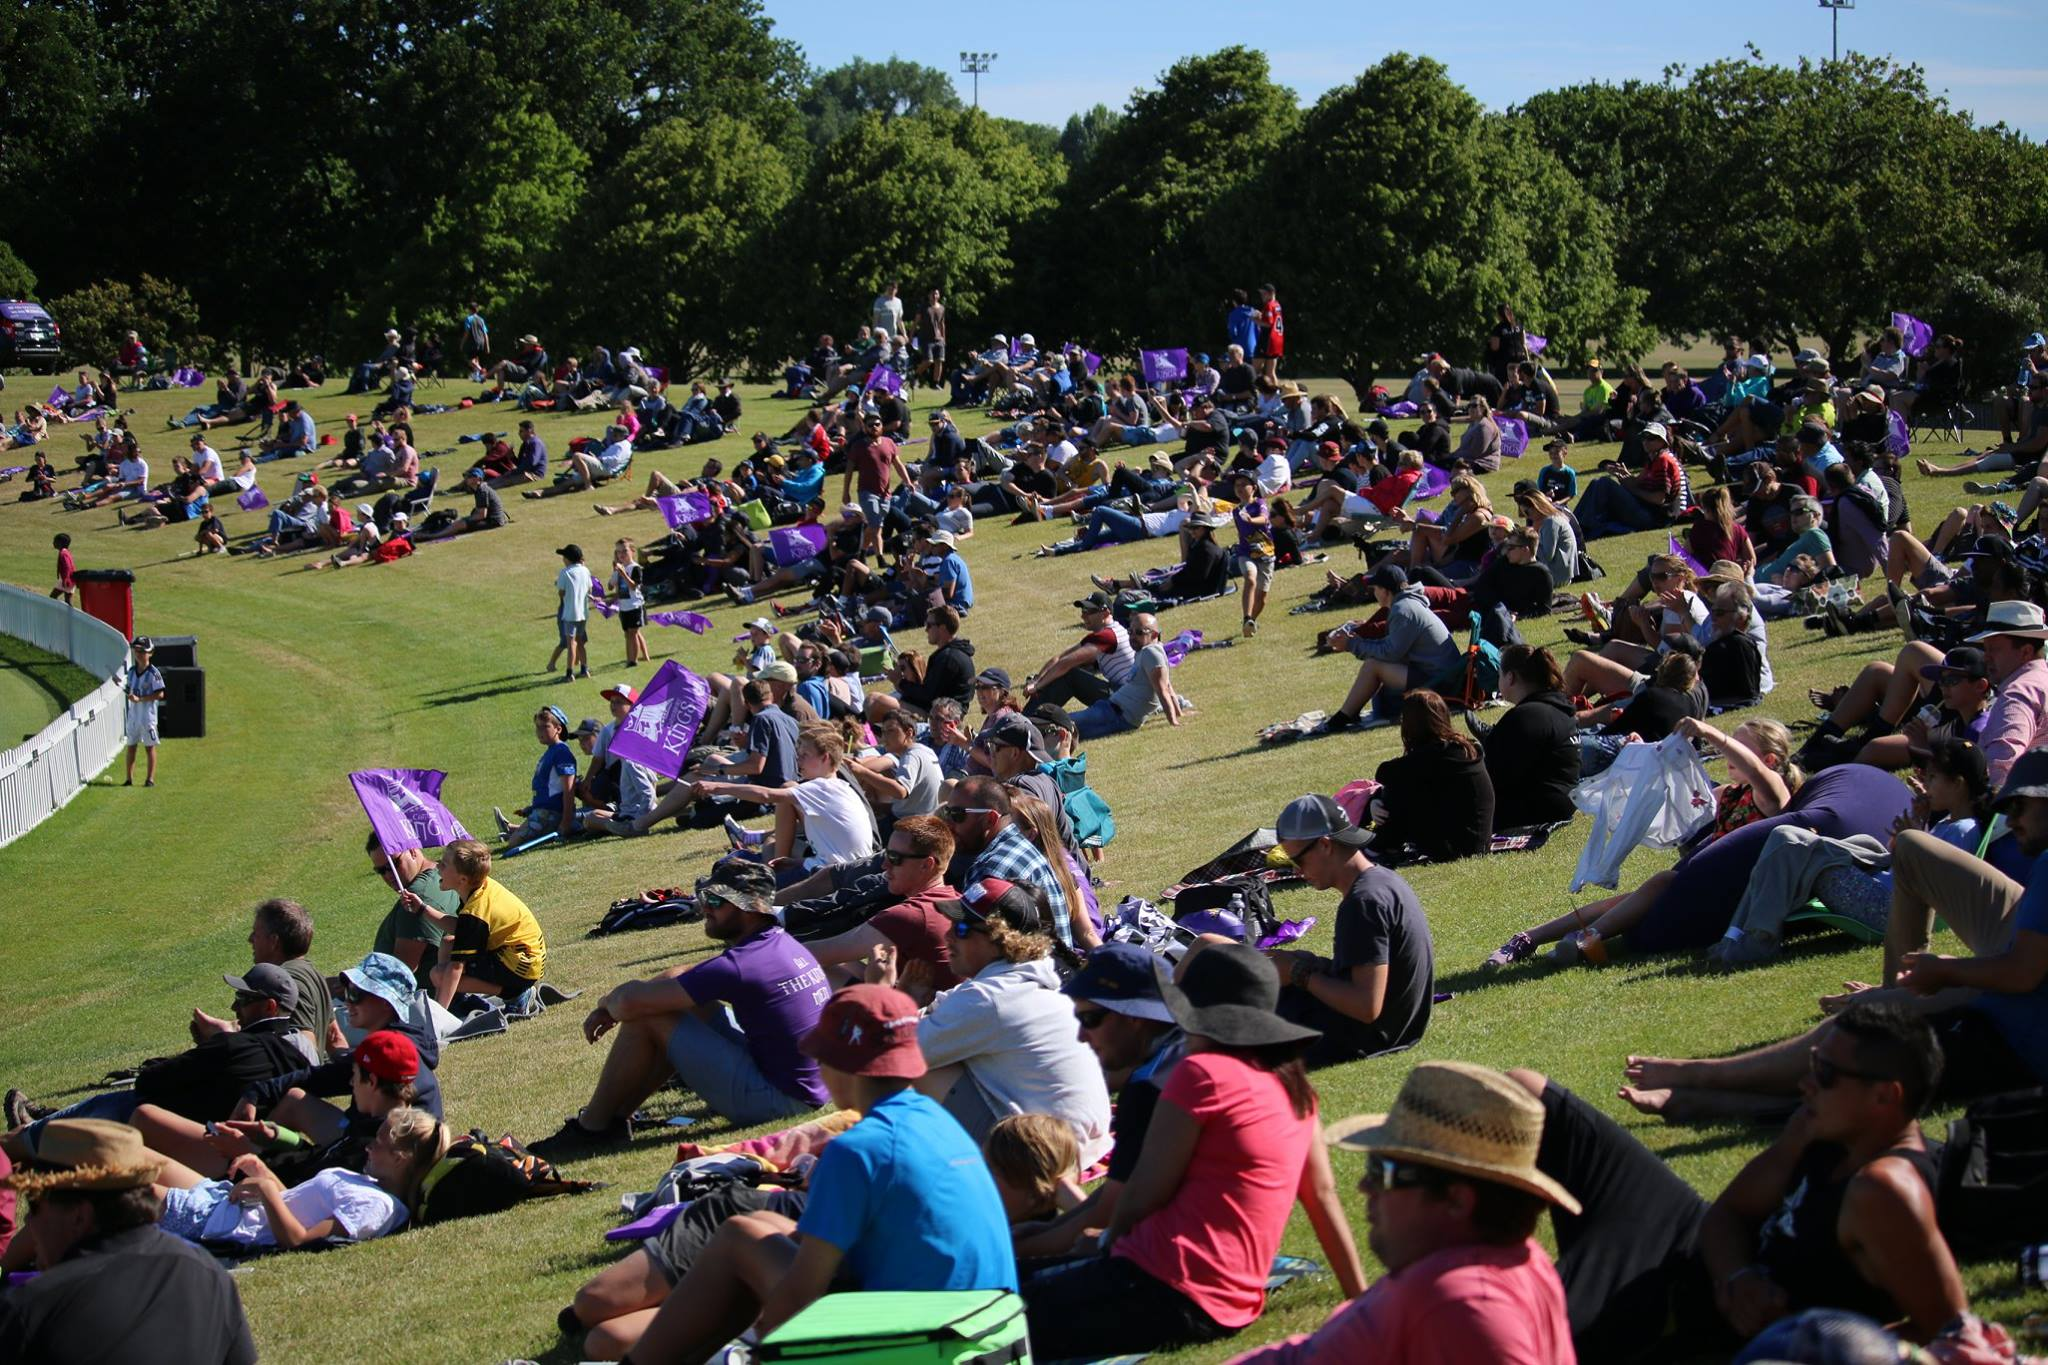 Final weekend of Canterbury Cricket at Hagley Oval for 2015